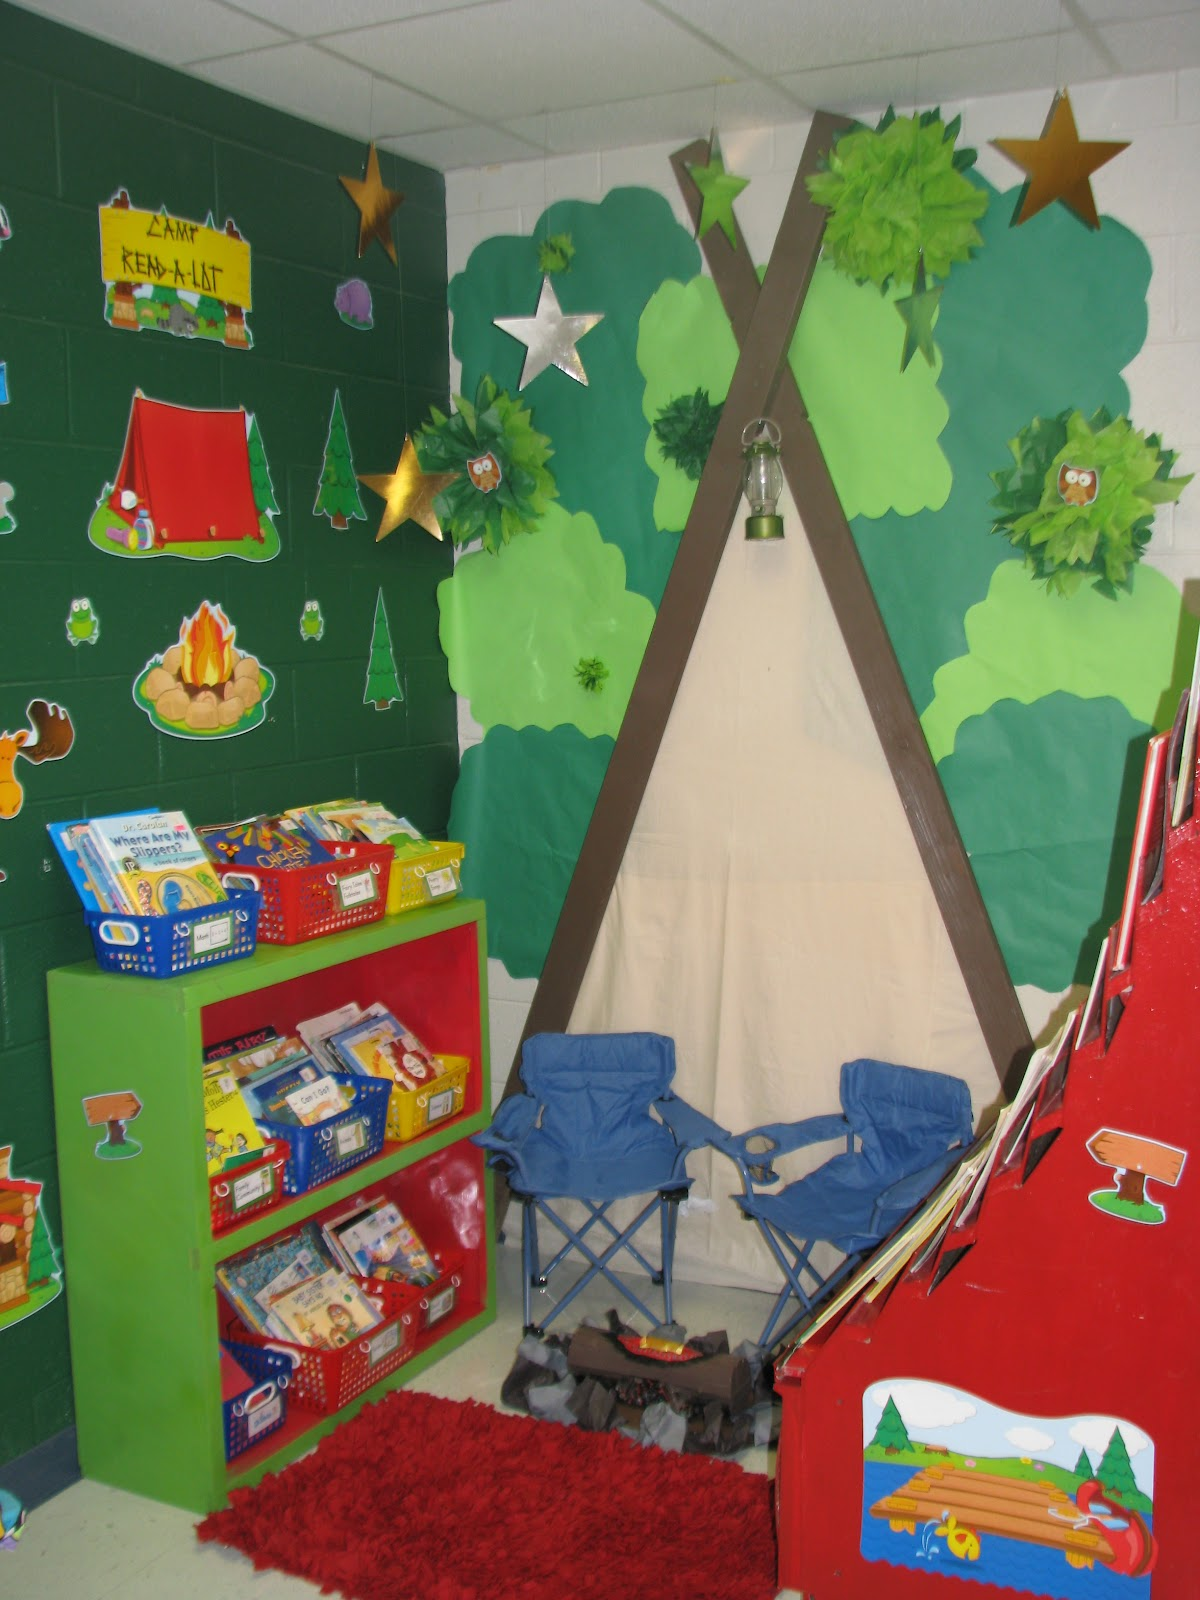 Camping Themed Classroom Decorations ~ Wills valley kinderkats updated for classroom photos